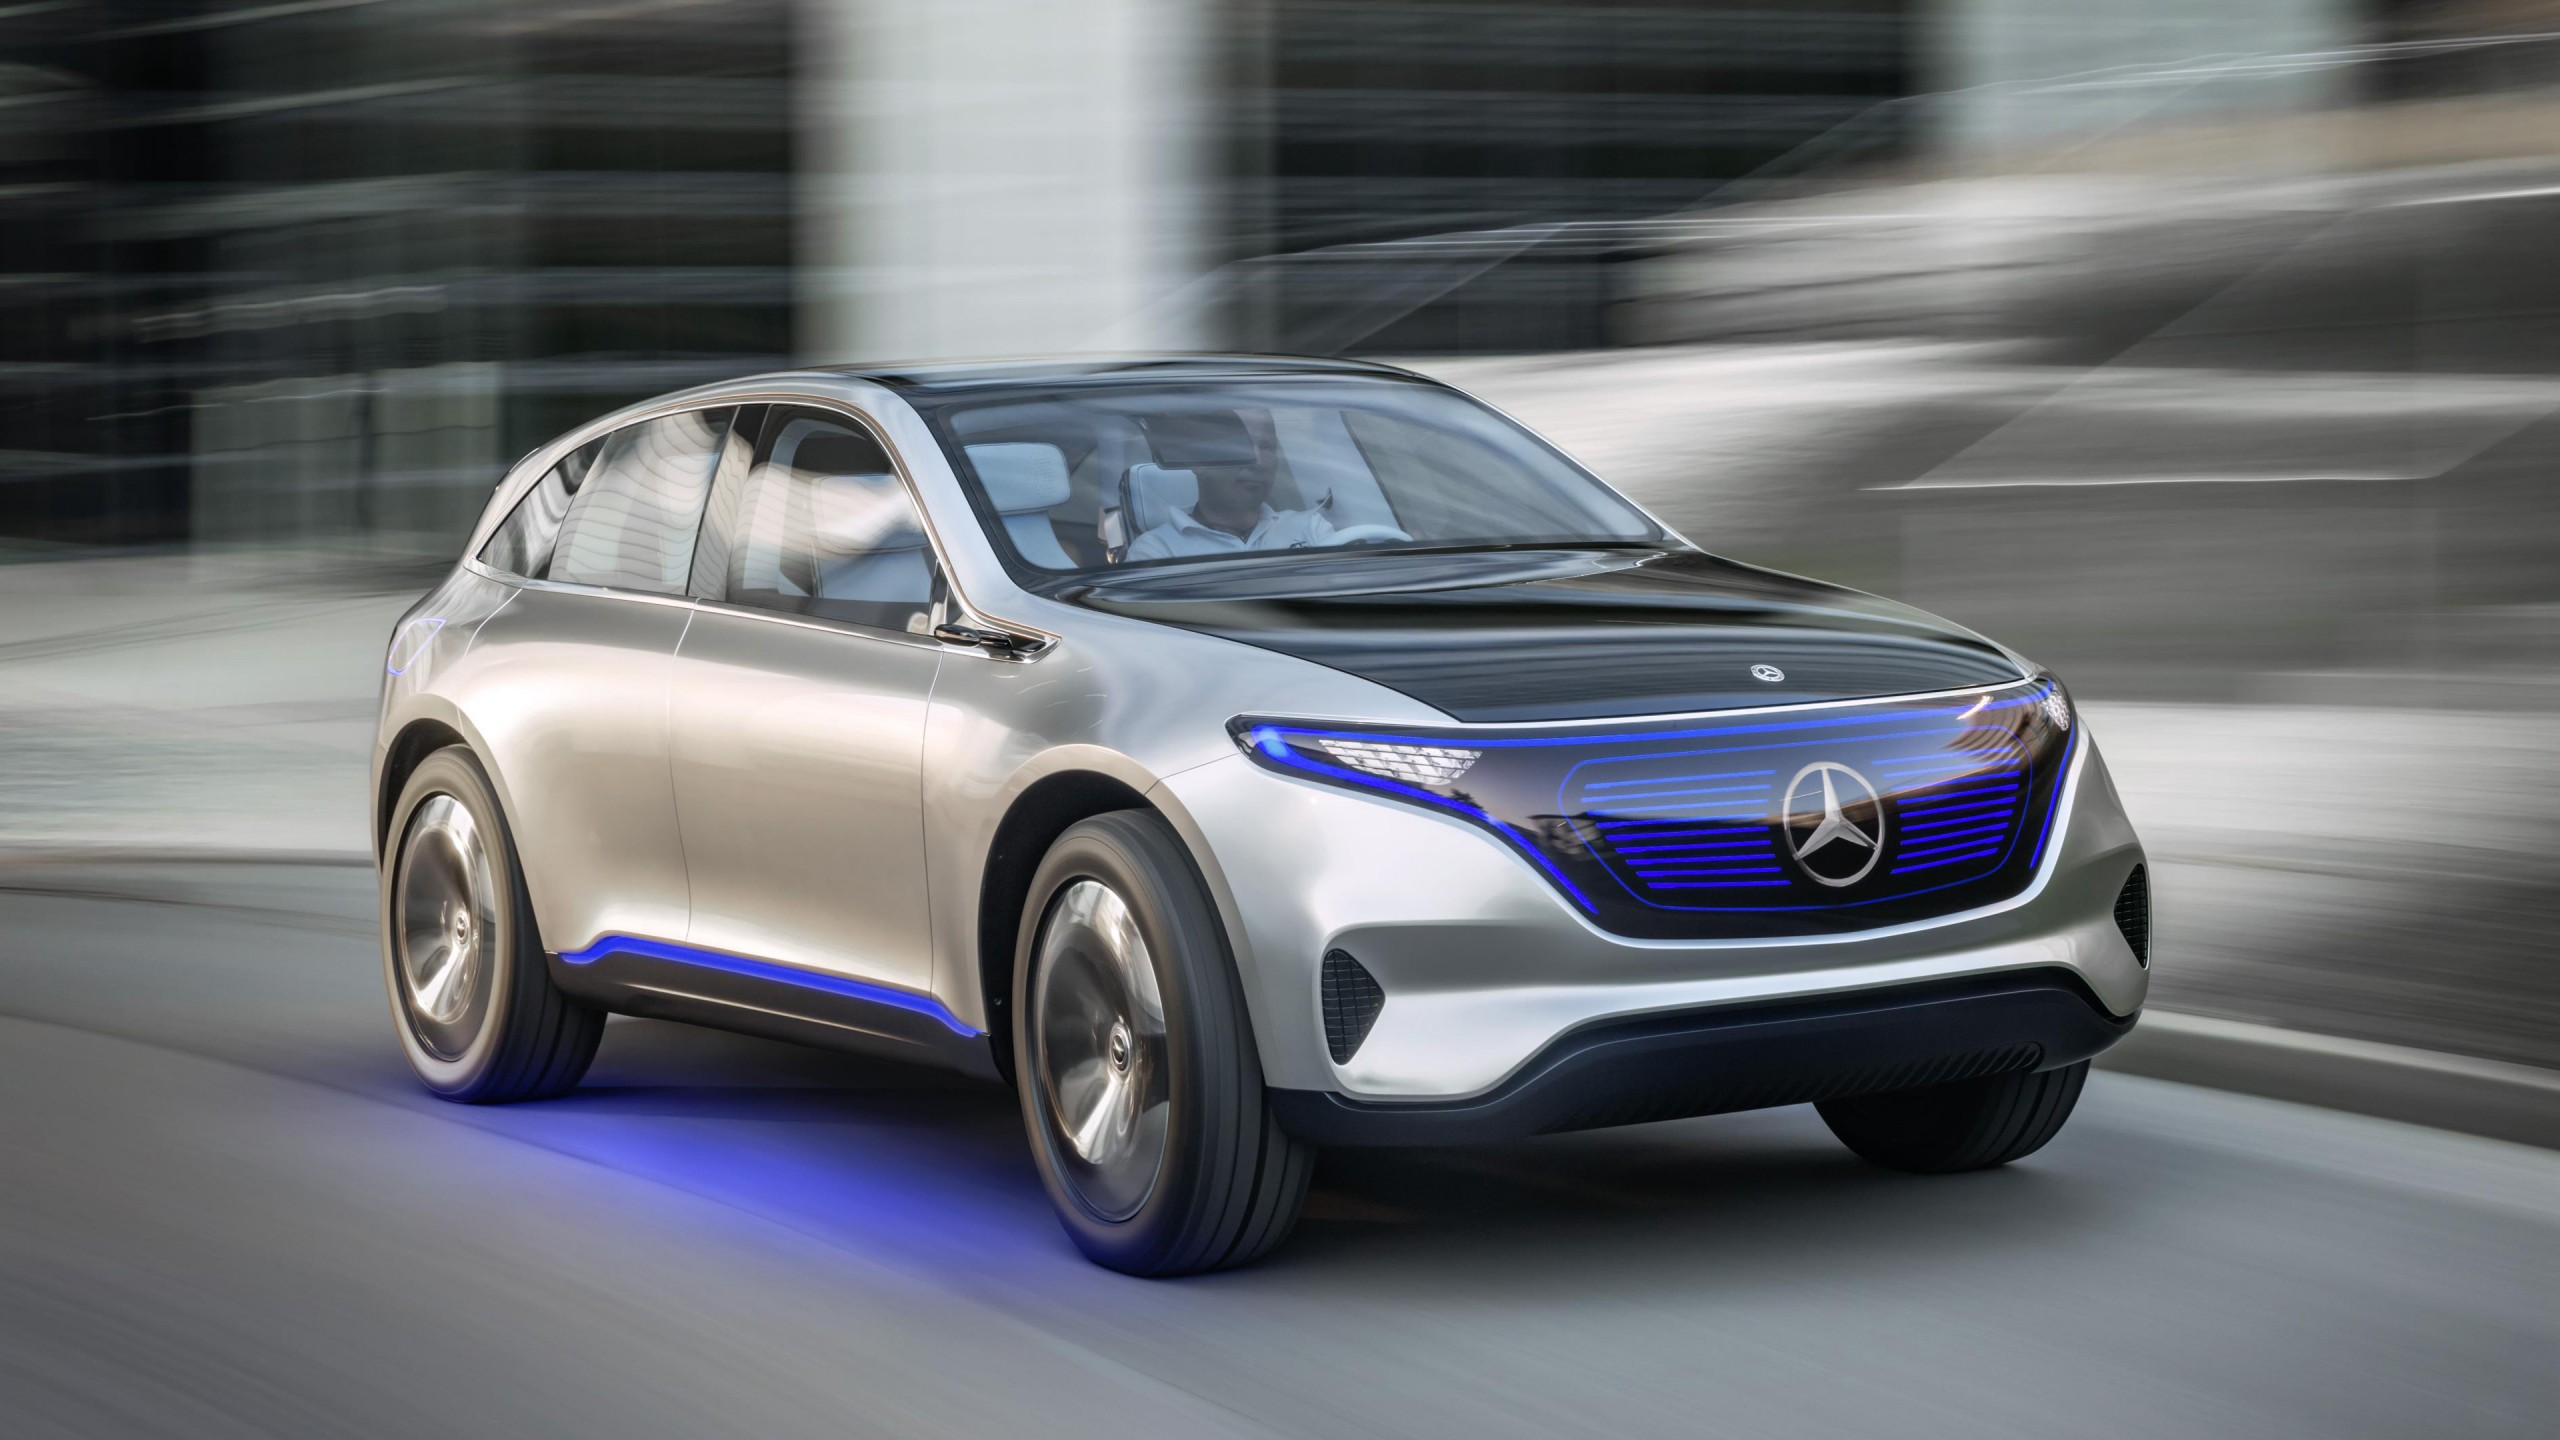 Mercedes benz eq electric suv 4k wallpaper hd car for Mercedes benze suv